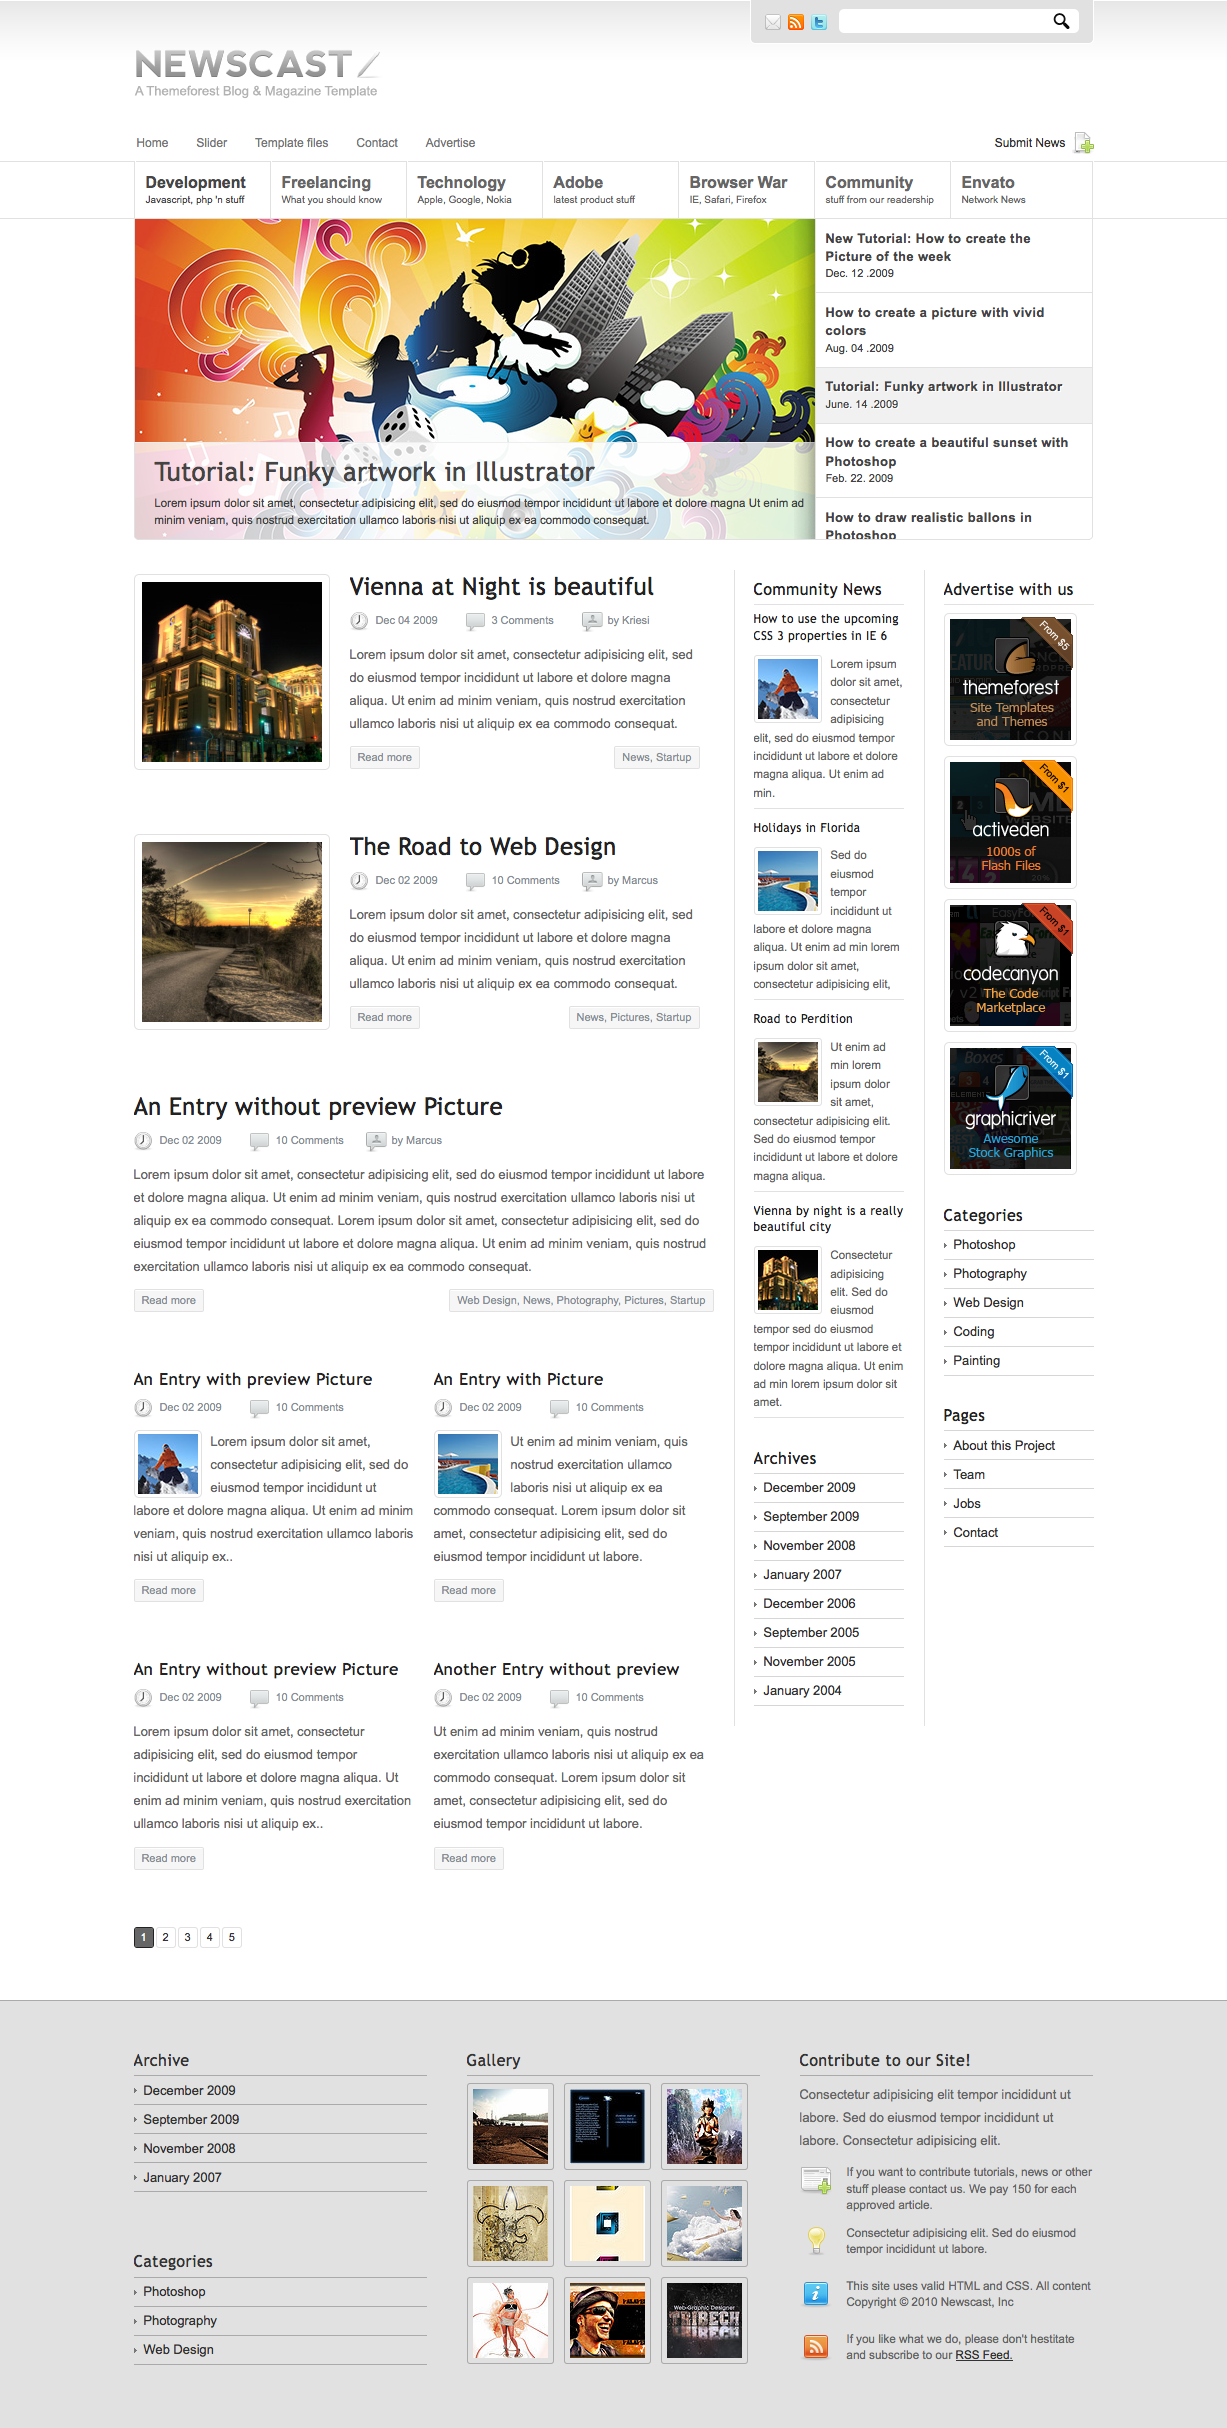 Newscast 4 in 1 - Magazine and Blog Template